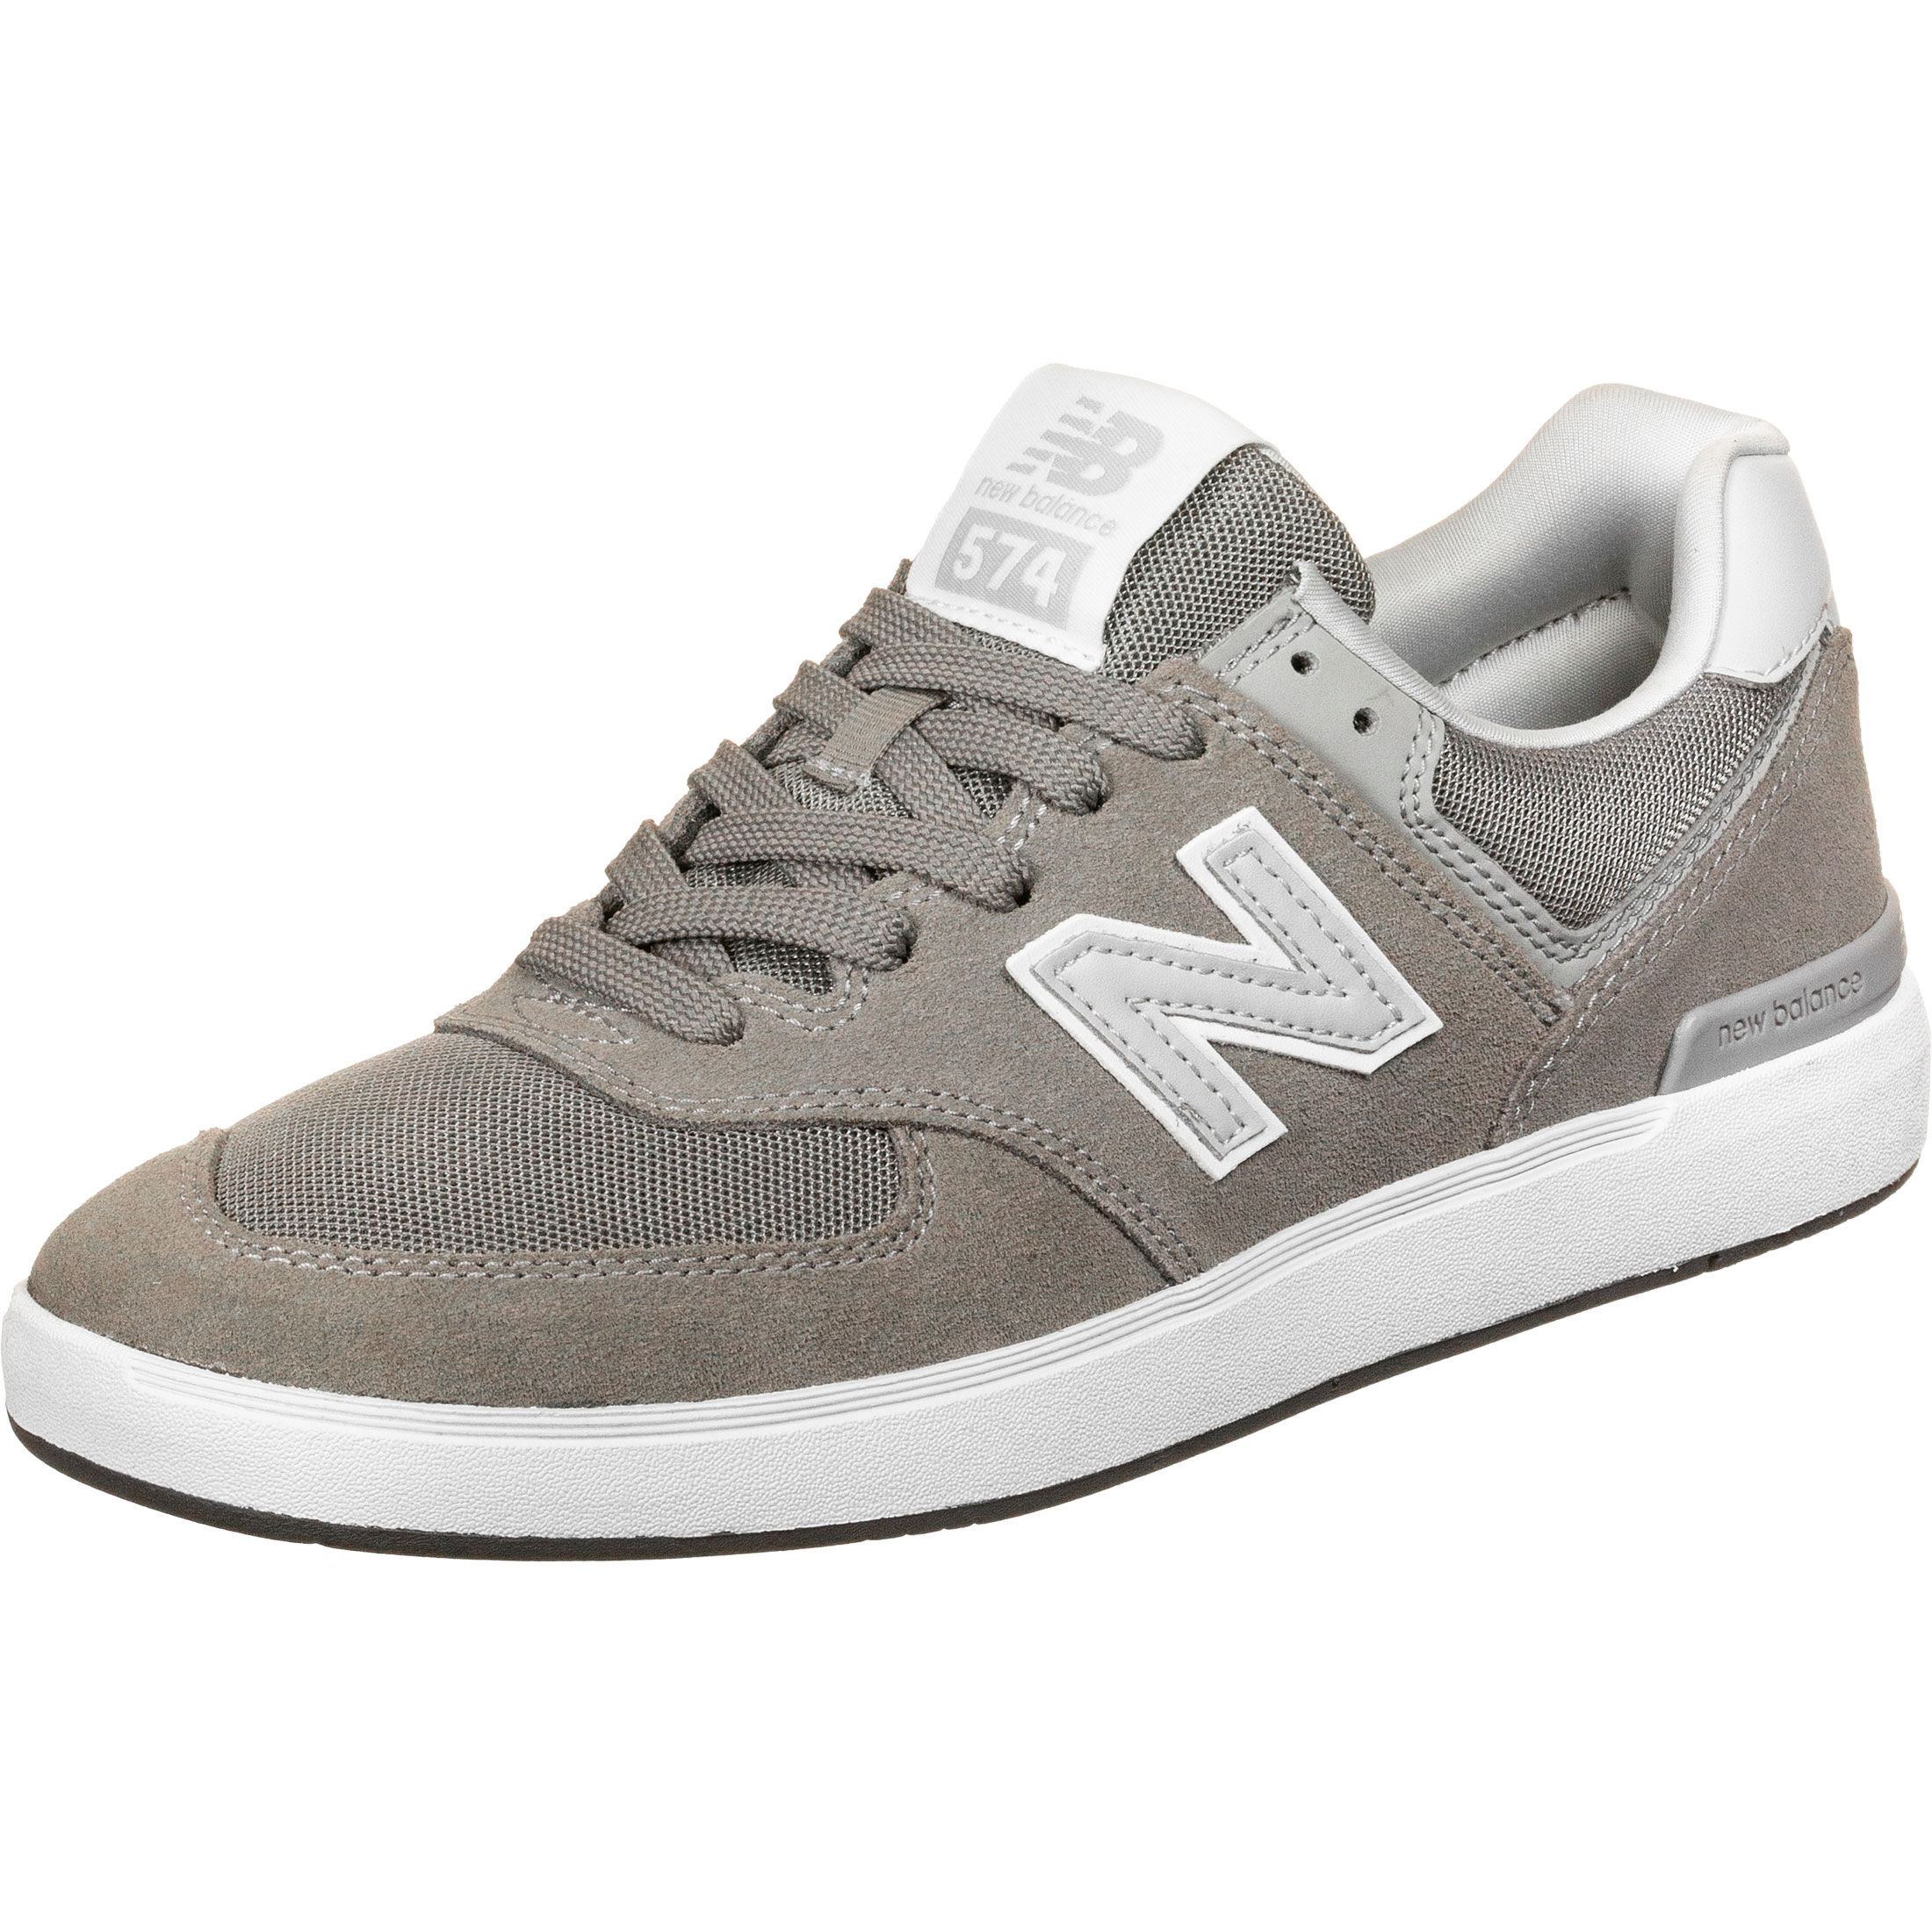 New Balance All Coasts 574 - Sneakers